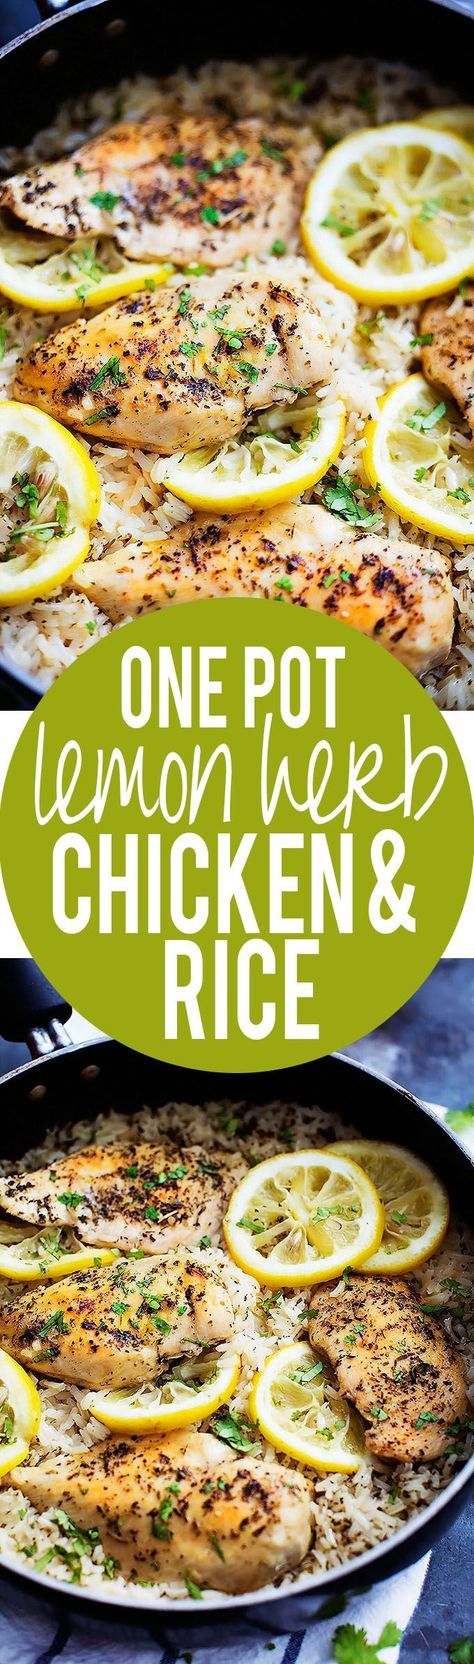 One Pot Lemon Herb Chicken & Rice | Creme de la Crumb